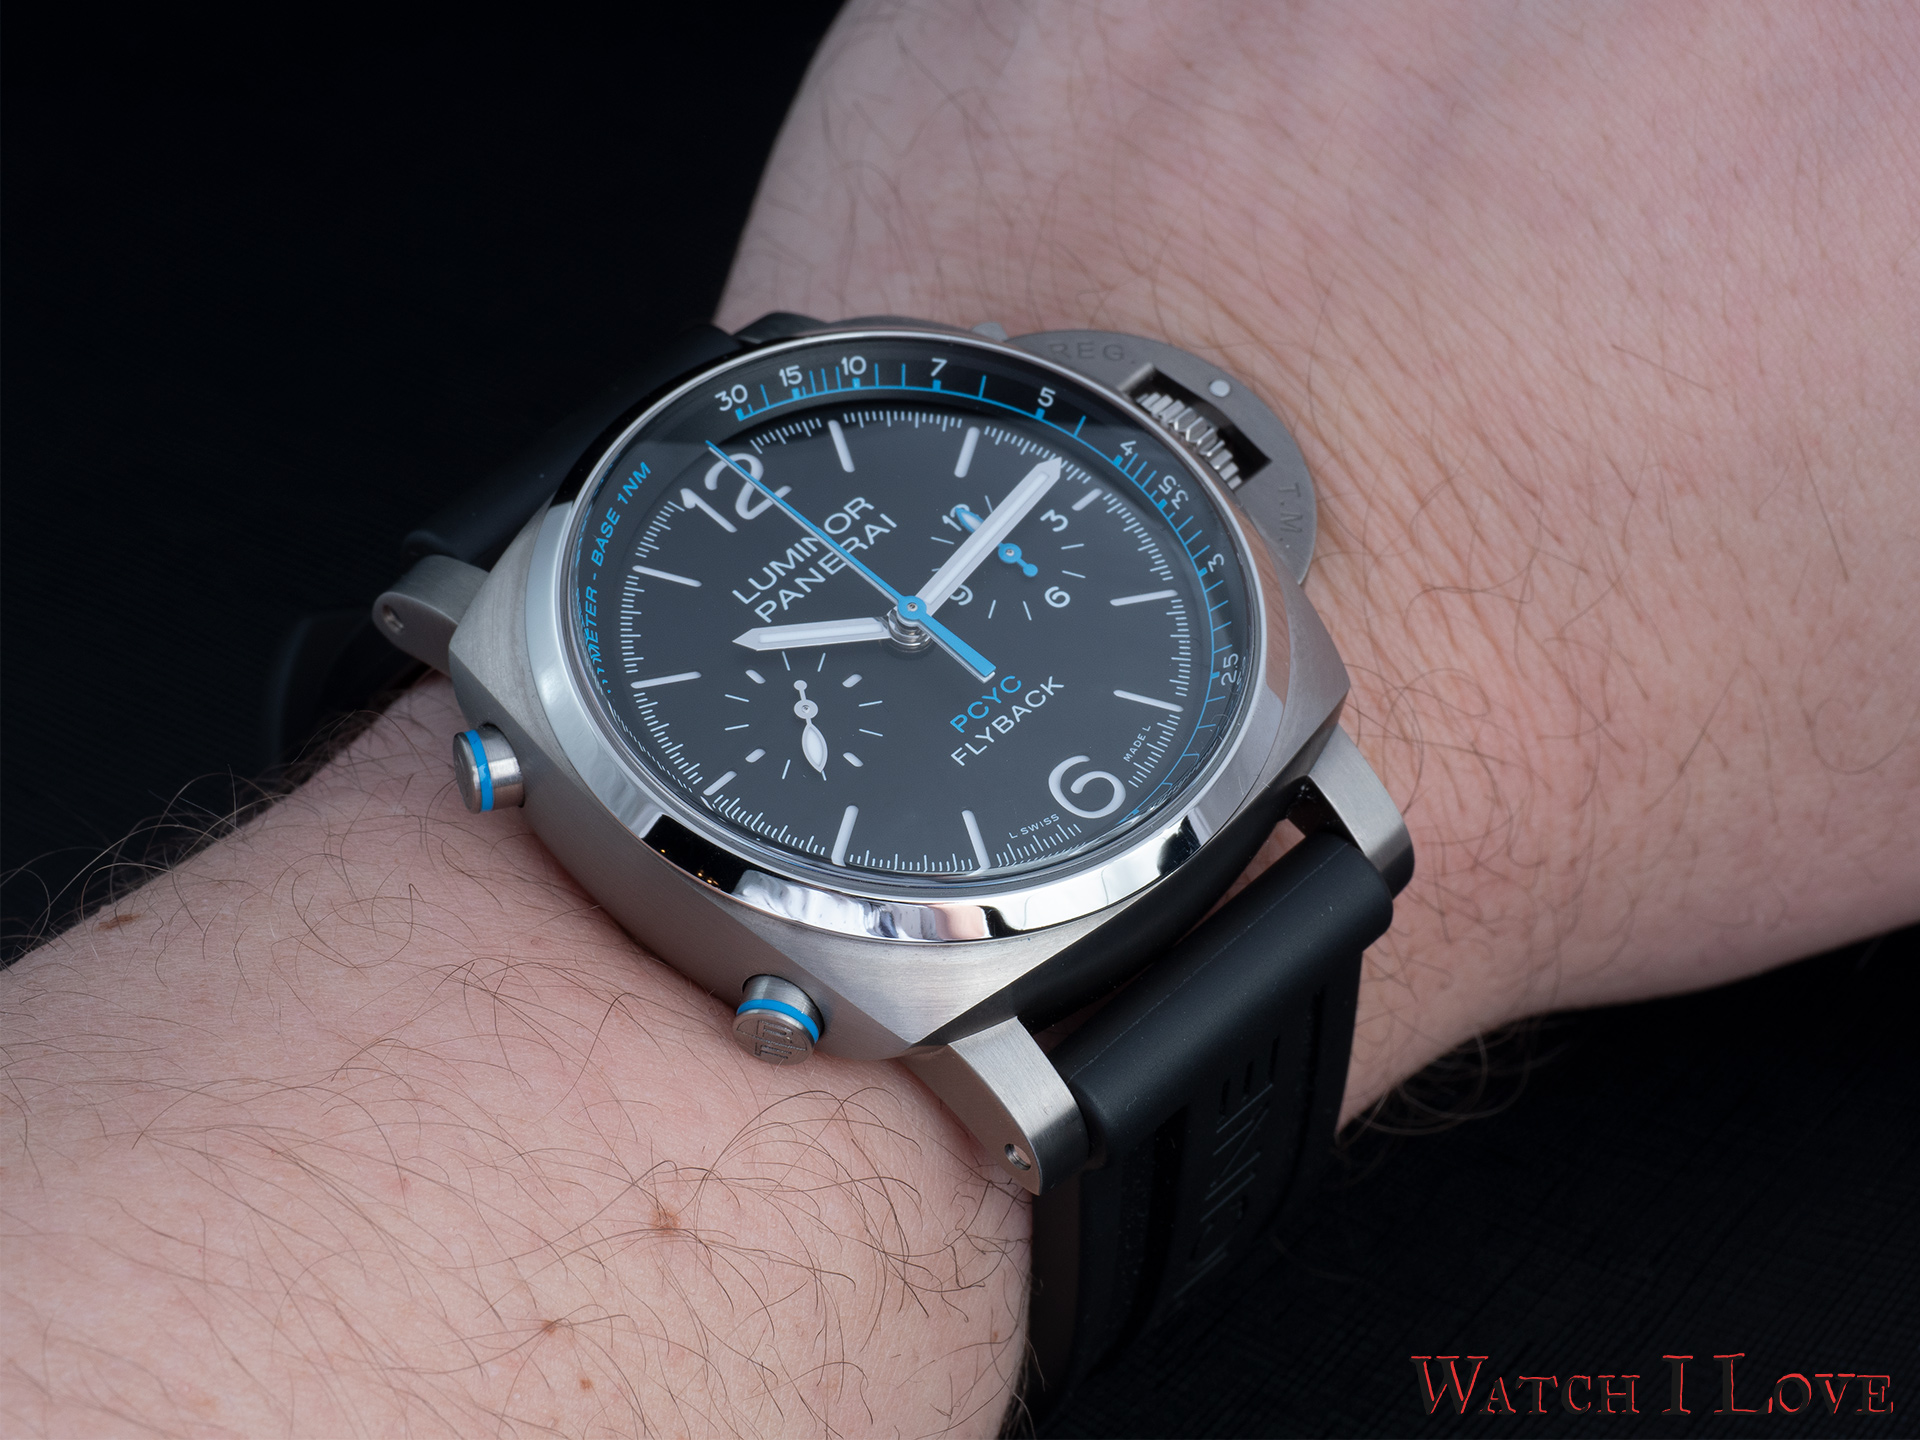 Panerai PAM764 on the wrist